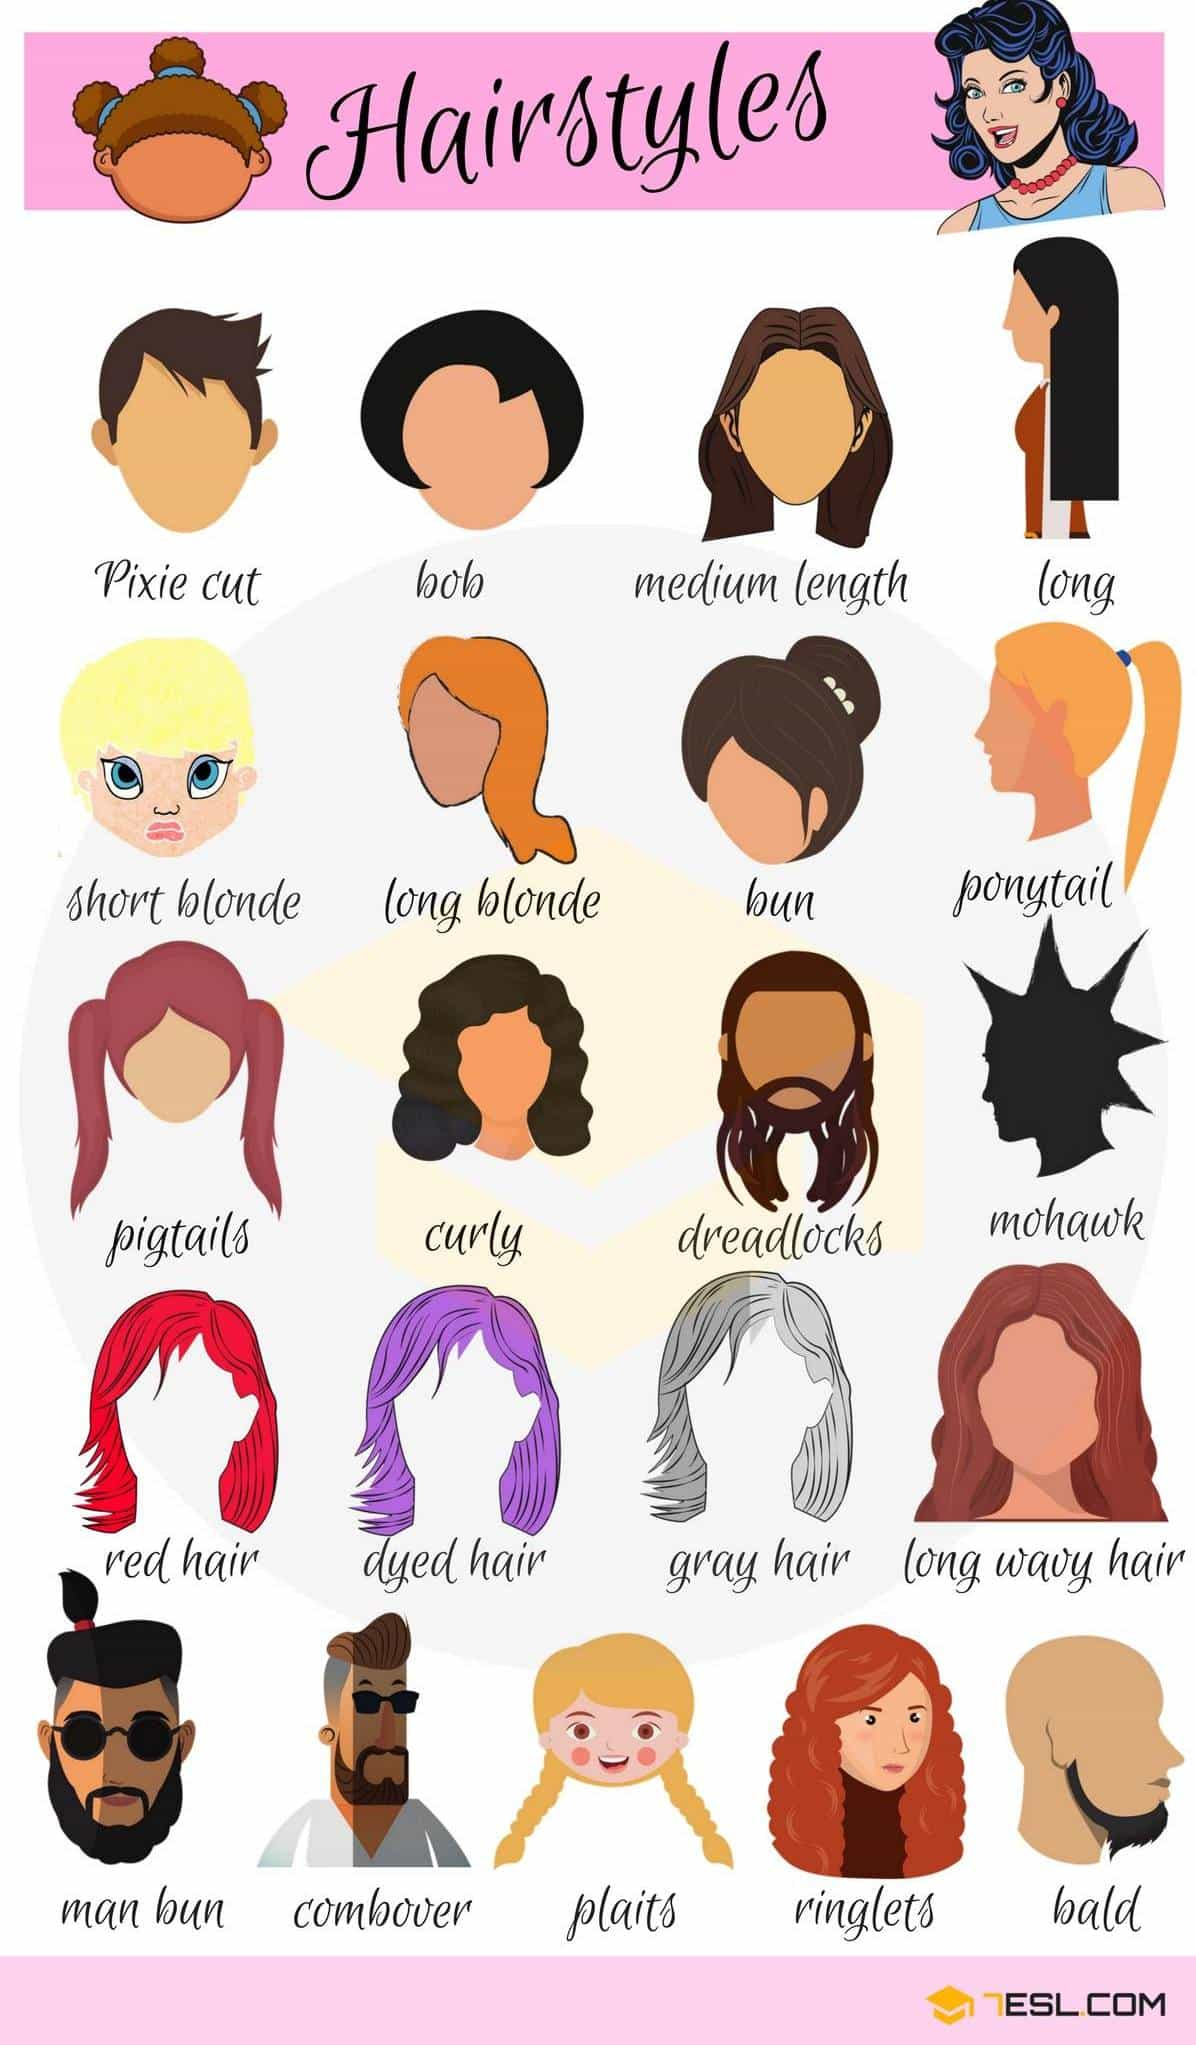 Hairstyle Vocabulary | Image